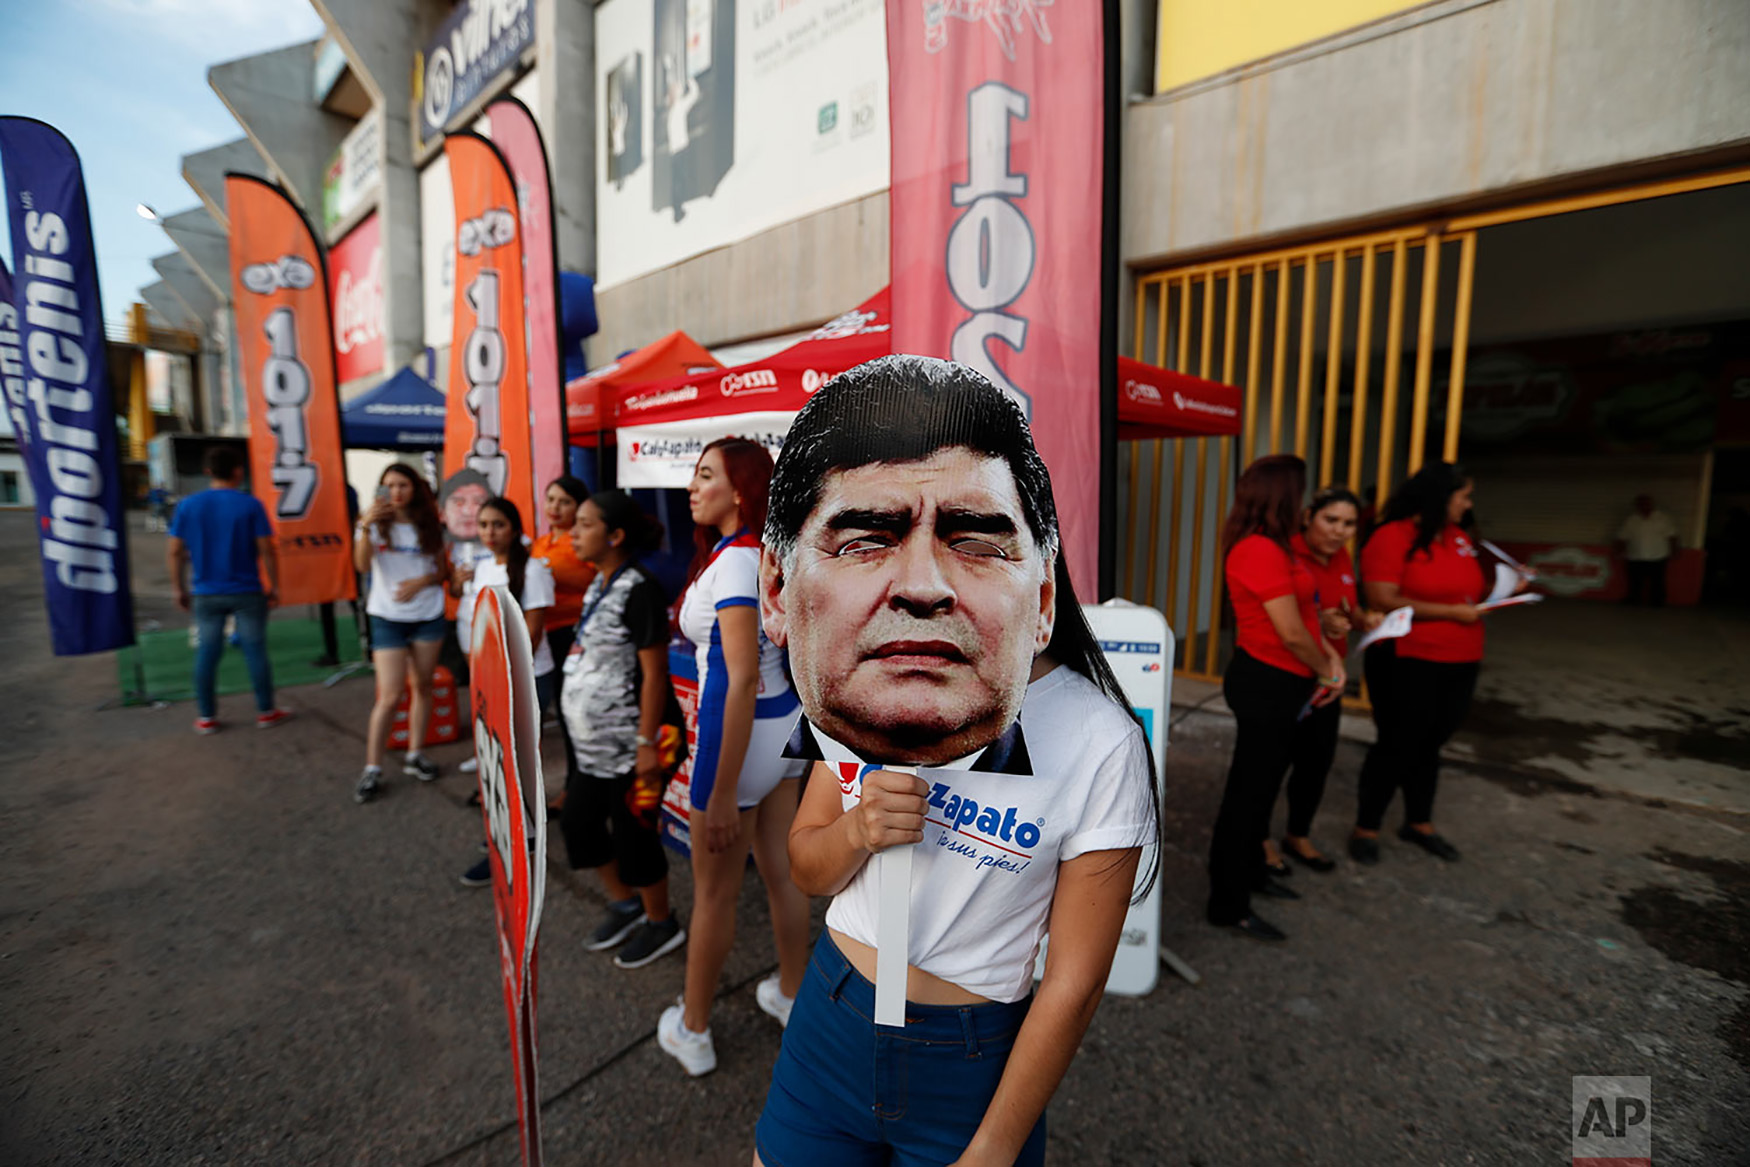 An event promoter holds a mask of former soccer star Diego Maradona, head coach of Dorados de Sinaloa soccer team, at the venue of a second-tier national league soccer match against Cafetaleros, his first game as coach for Dorados in Culiacan, Mexico, Sept. 17, 2018. (AP Photo/Eduardo Verdugo)